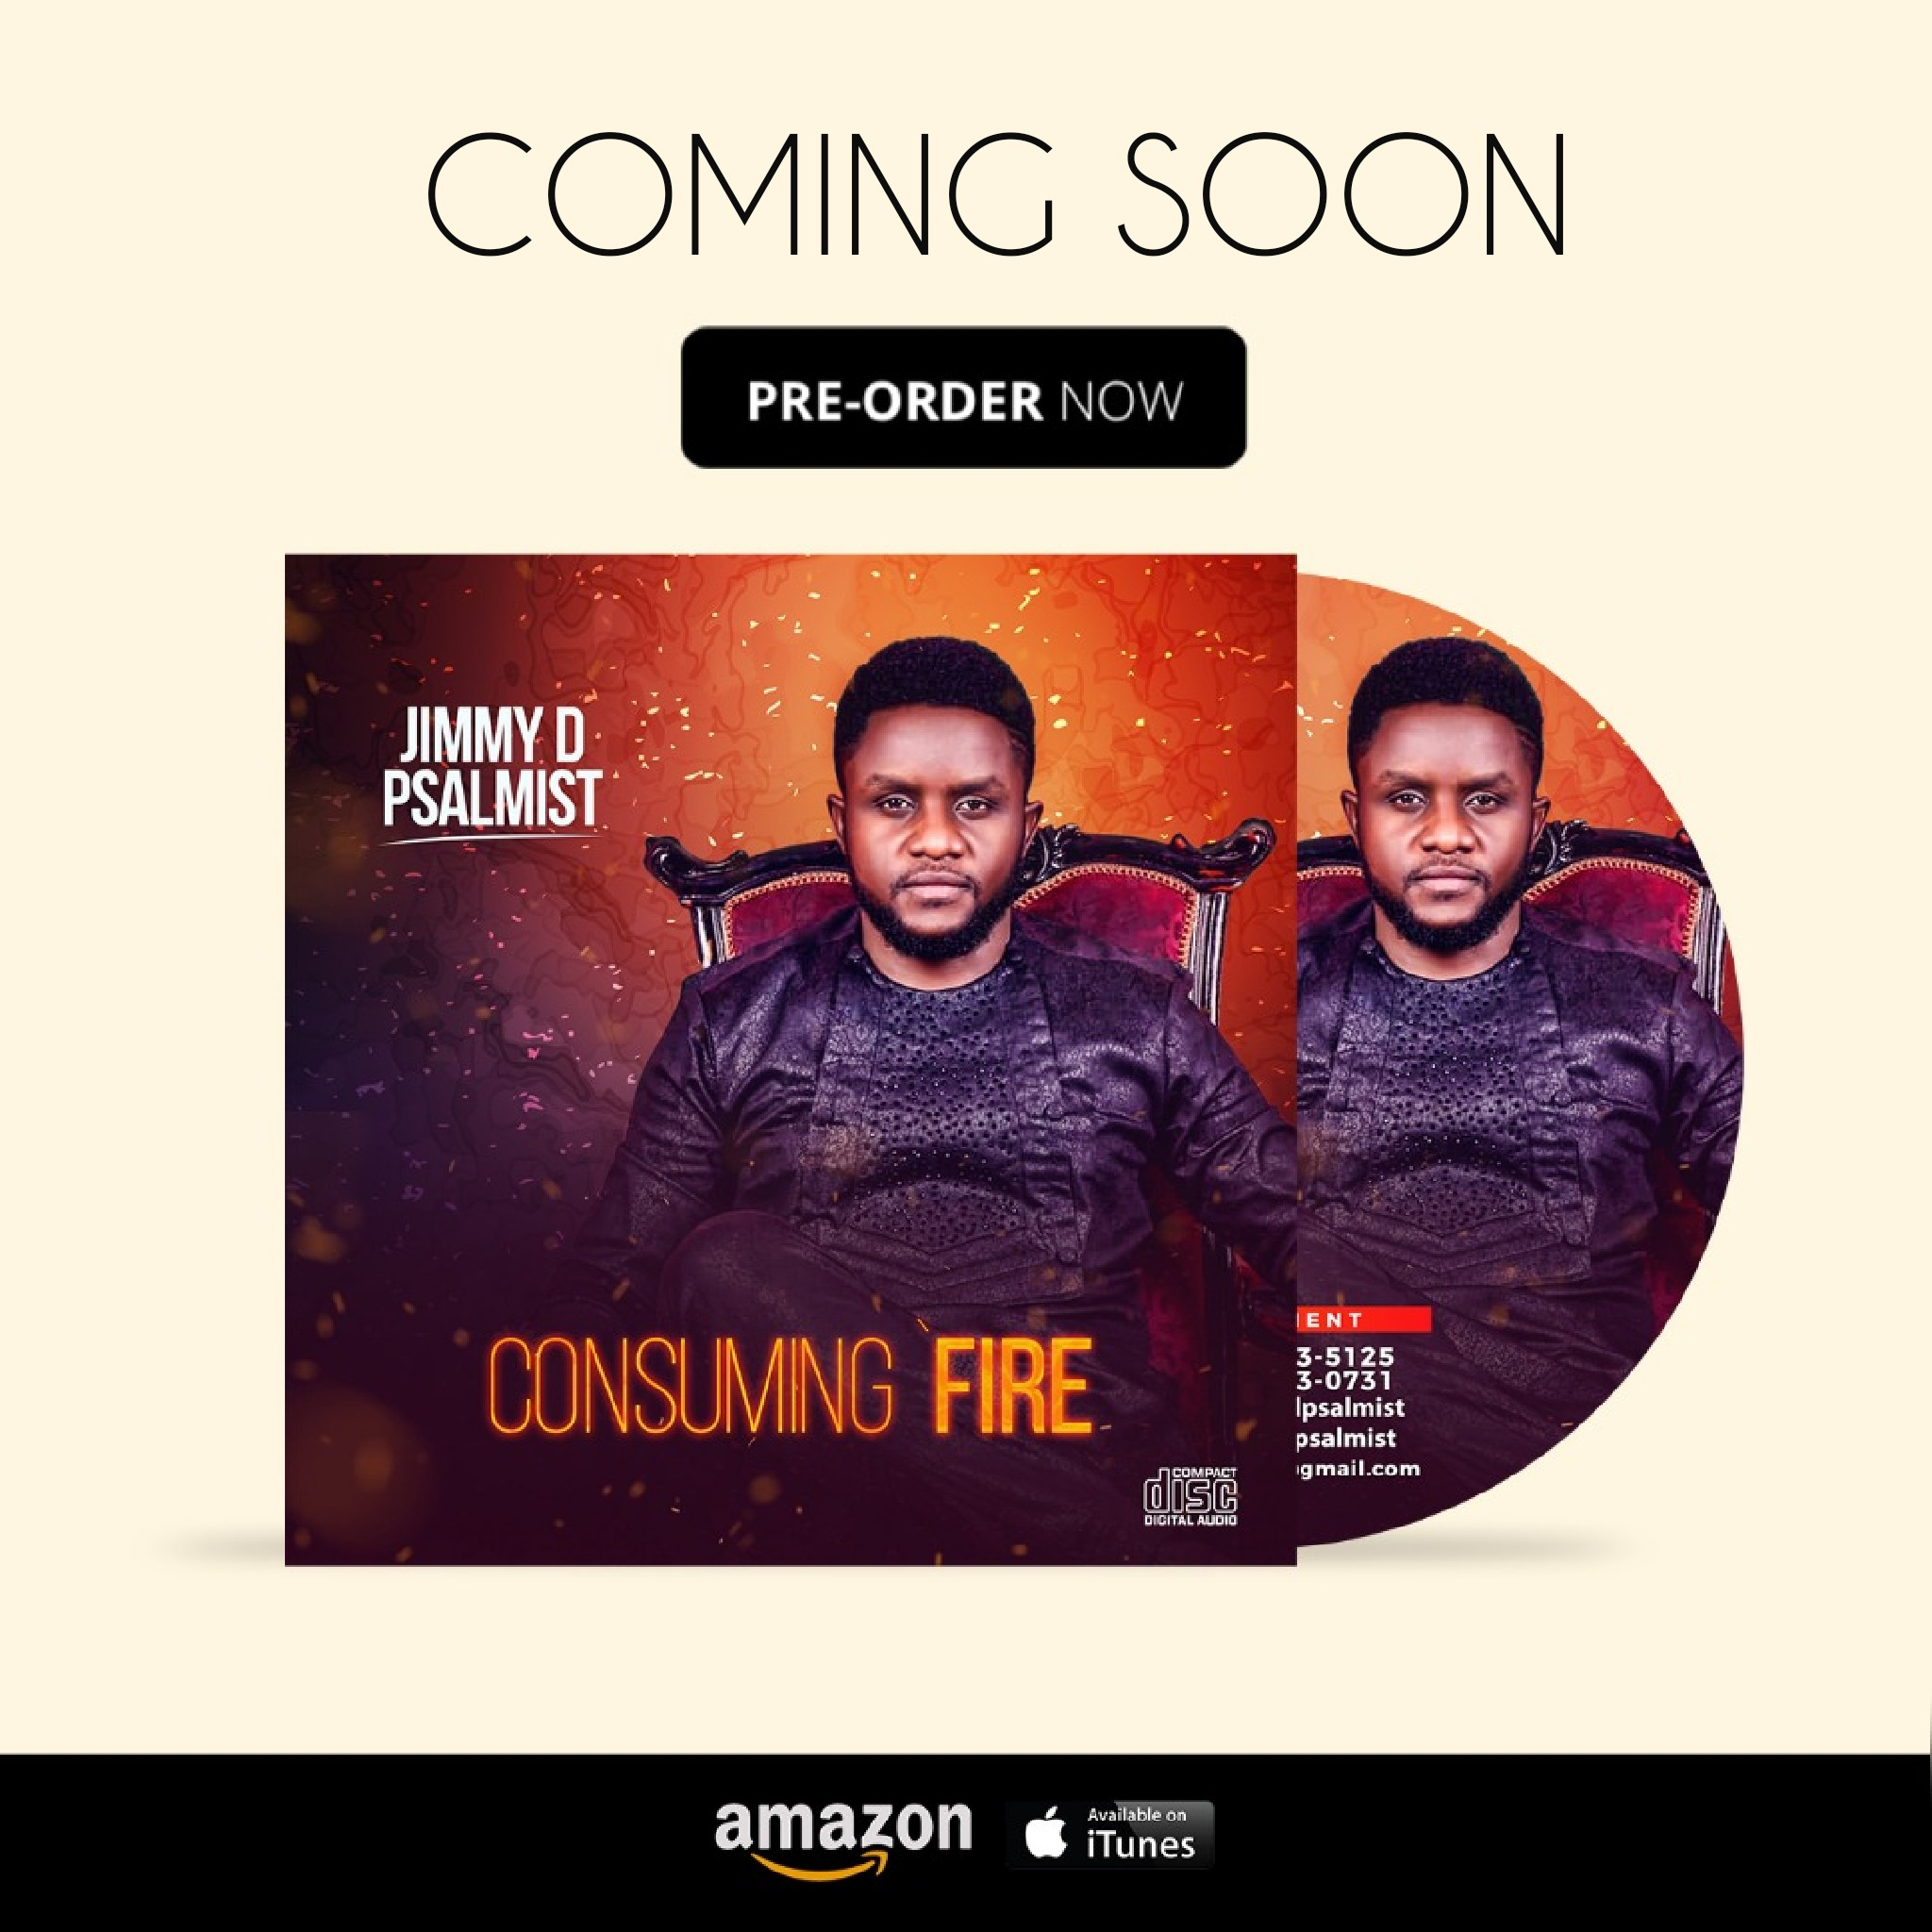 Jimmy D Psalmist New album Consuming Fire